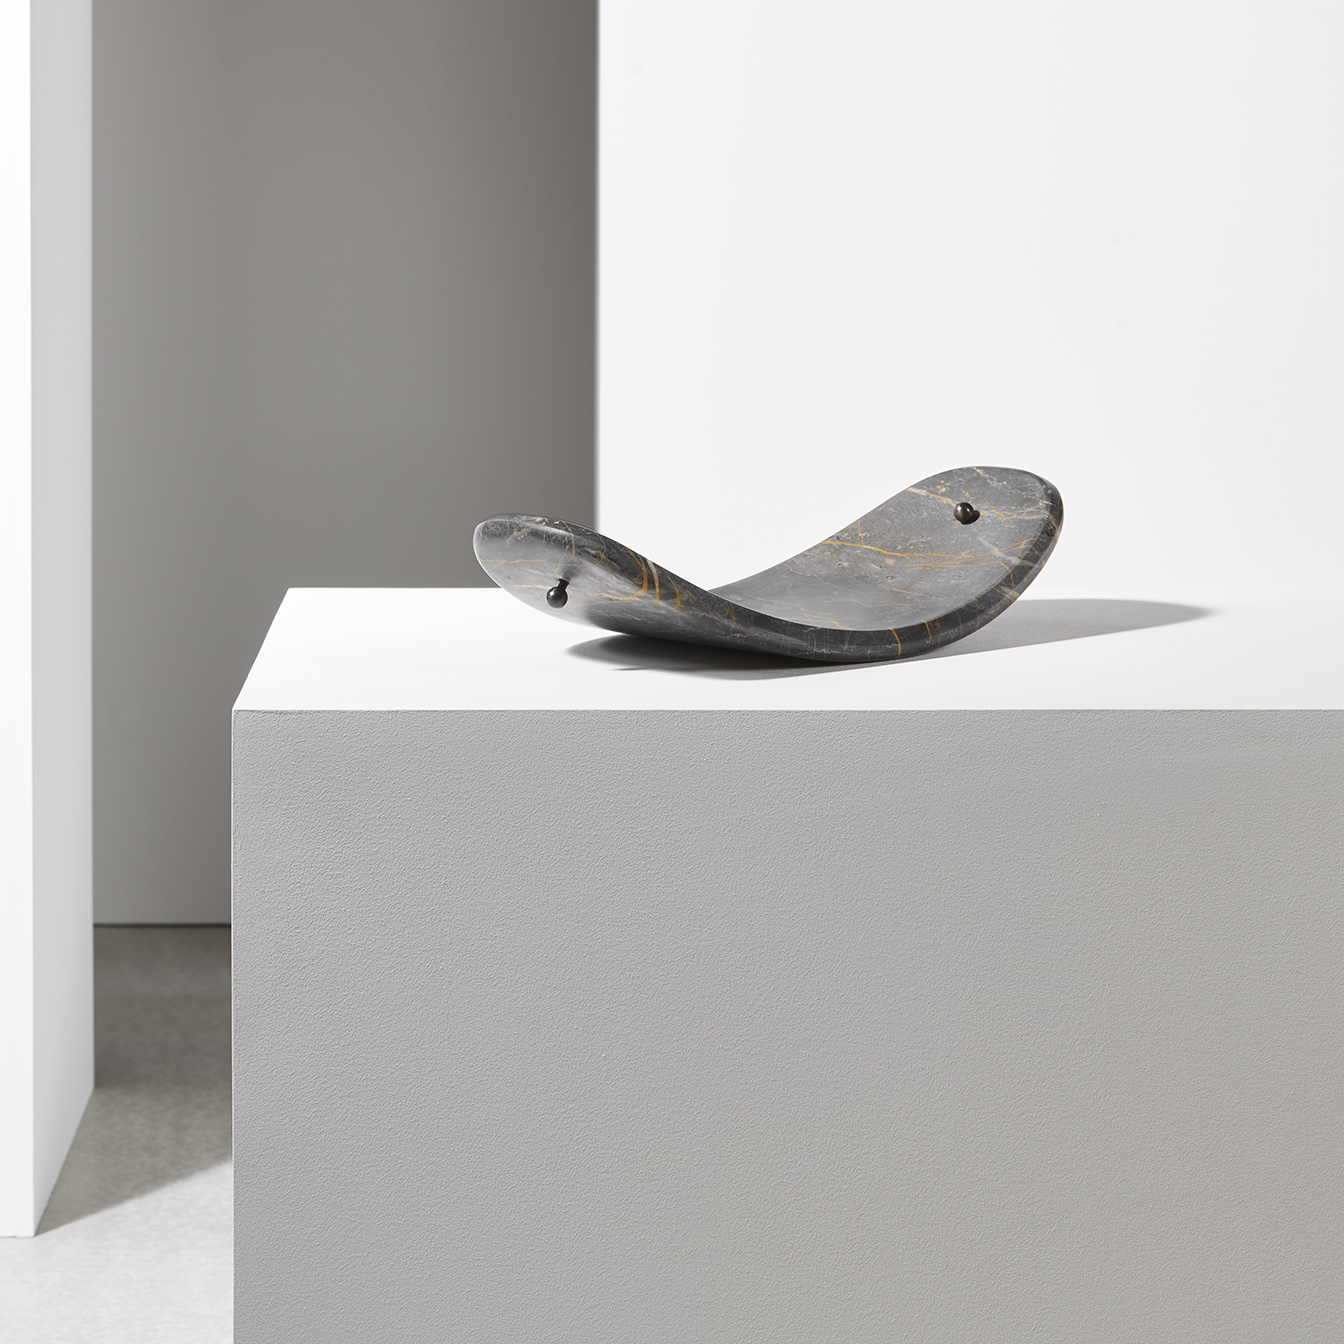 NUPE-bowl-Luca-Erba-Collection-Particulière